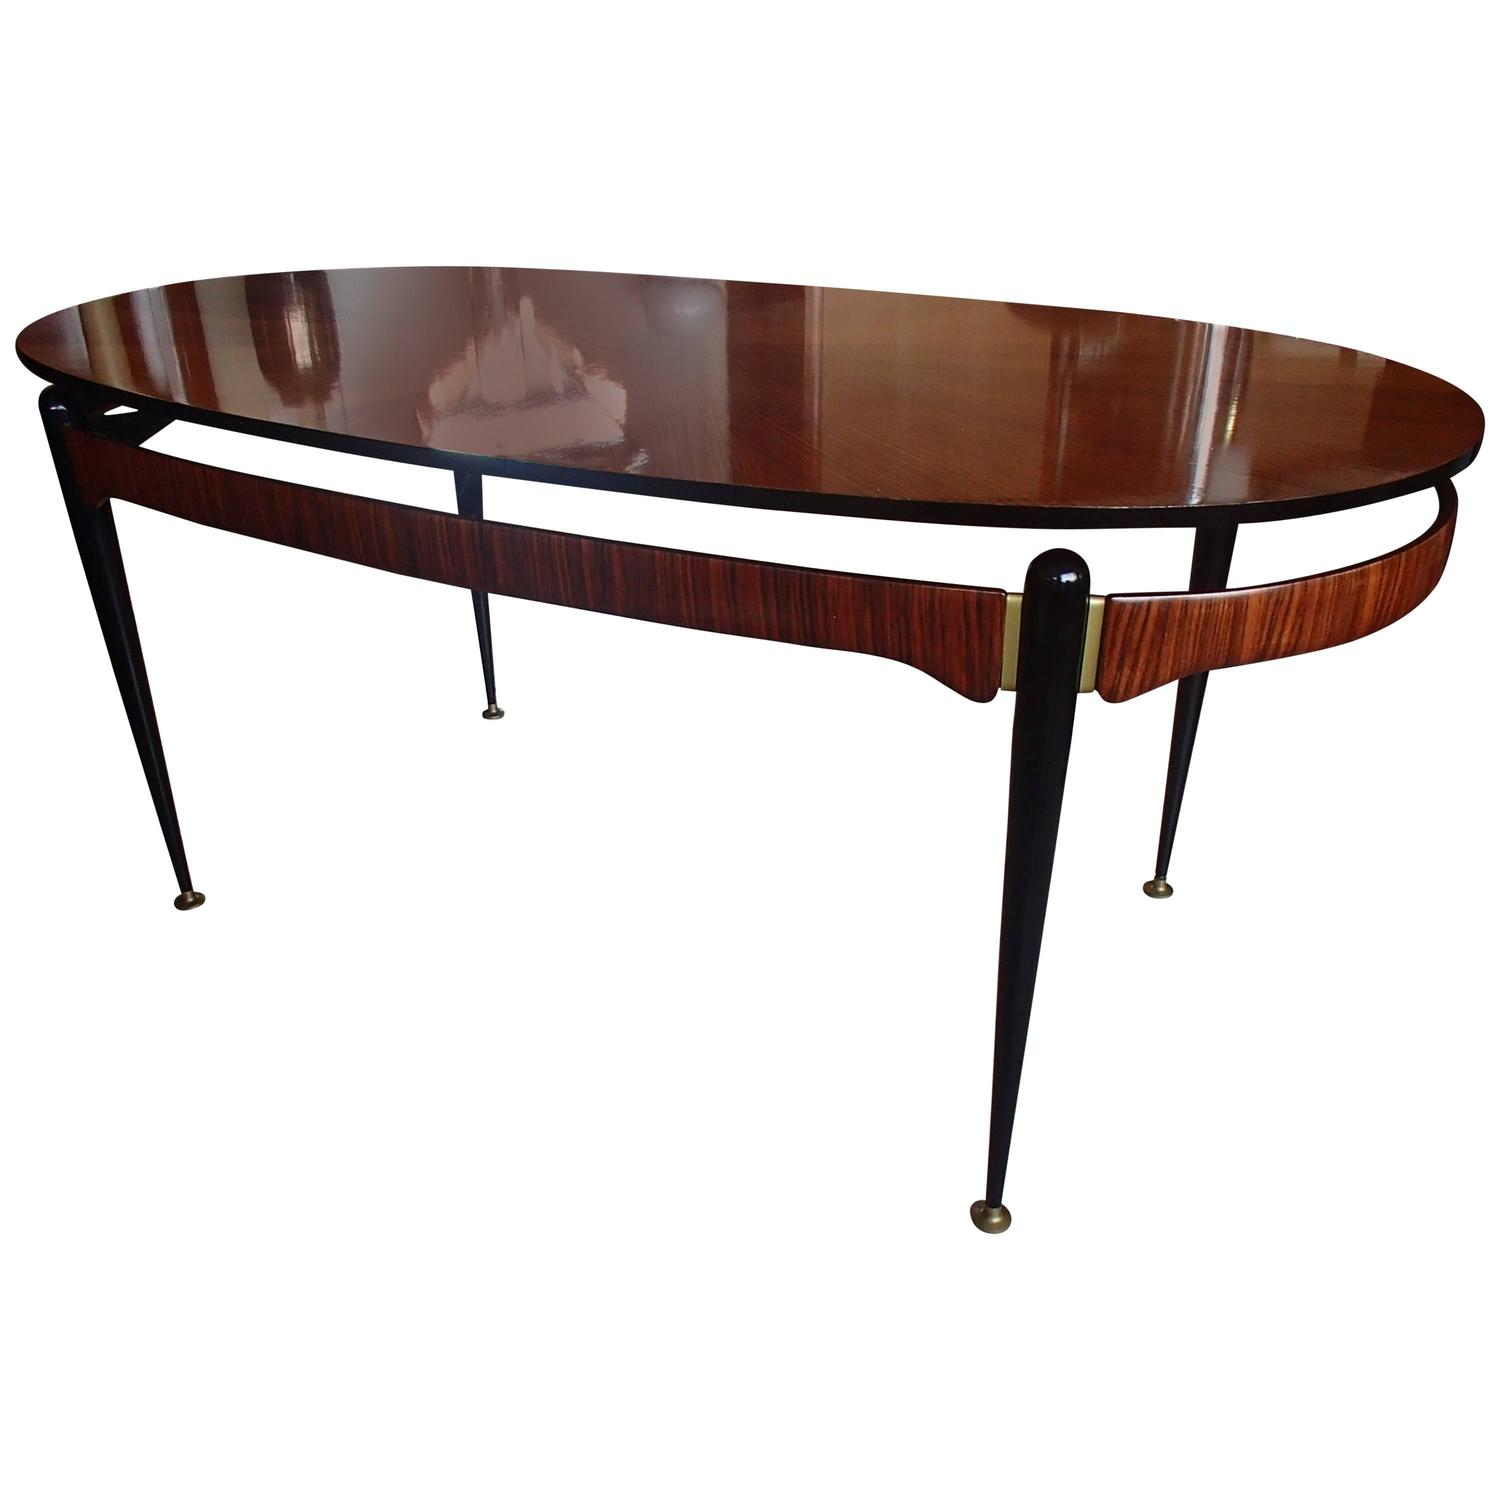 Italian Mid Century Dining Table Rosewood Brass Black Legs For Sale At 1stdibs